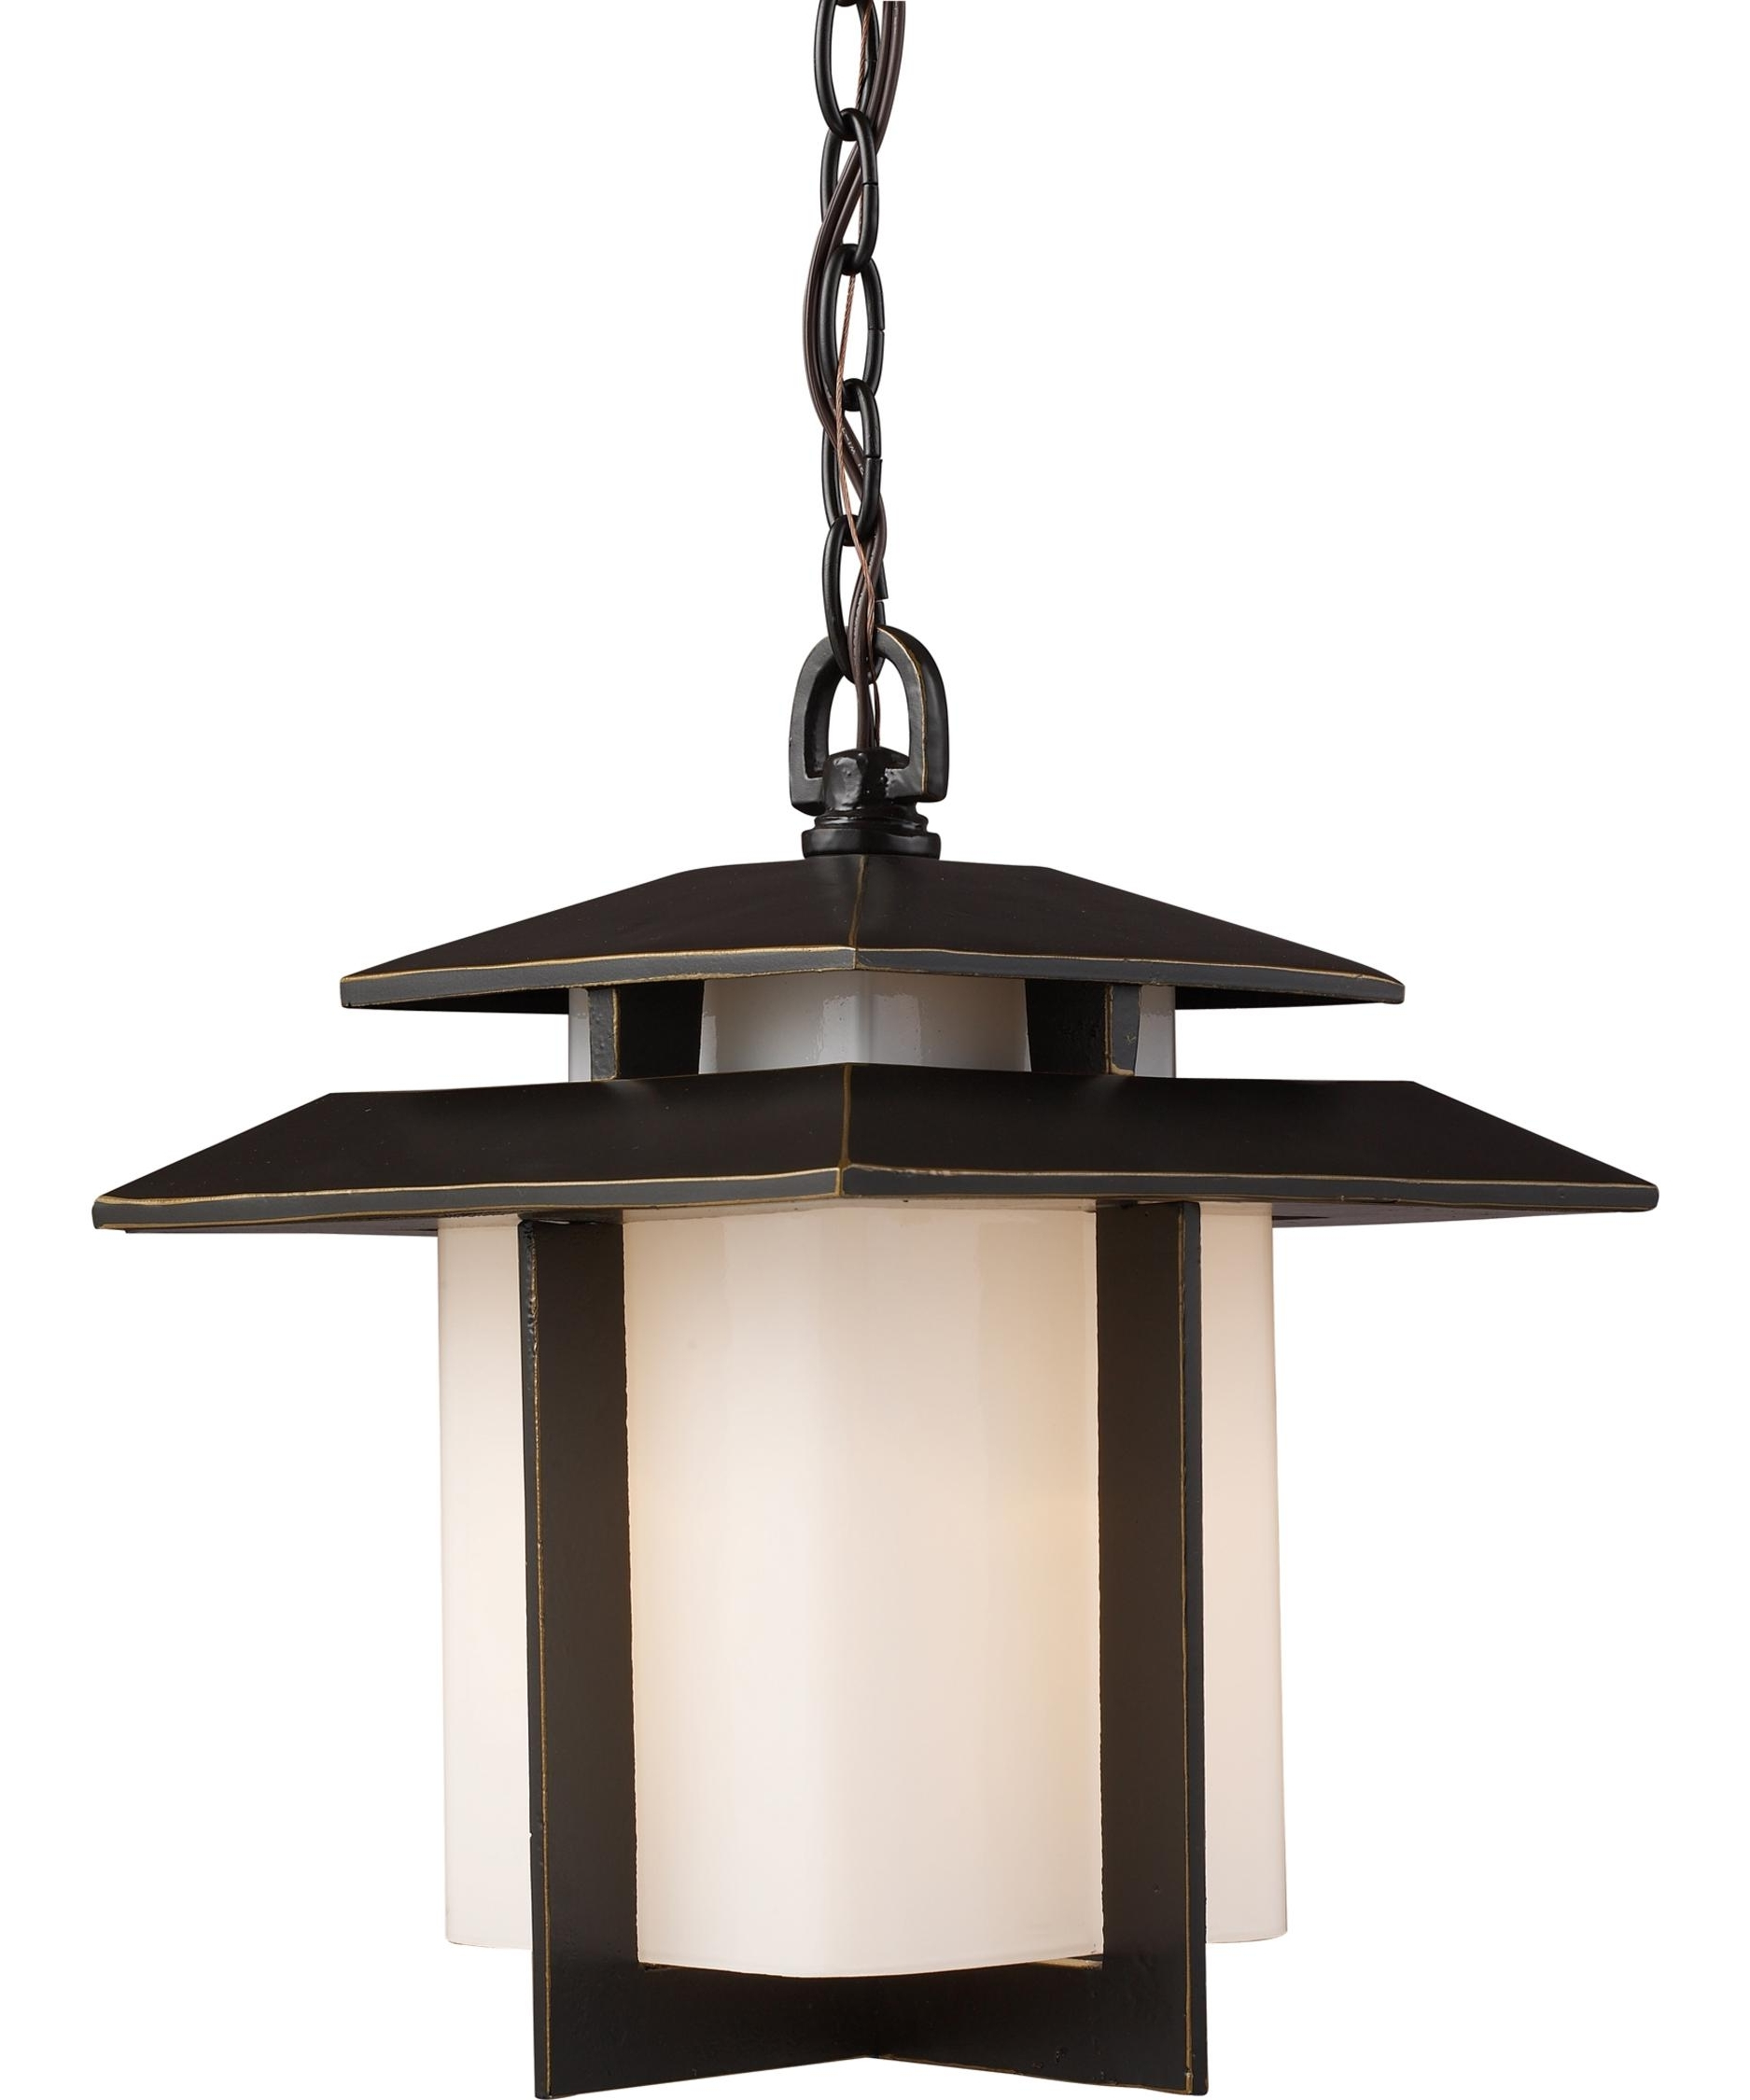 Widely Used Elk Lighting 42172 1 Kanso 10 Inch Wide 1 Light Outdoor Hanging Throughout Outdoor Japanese Lanterns For Sale (View 19 of 20)